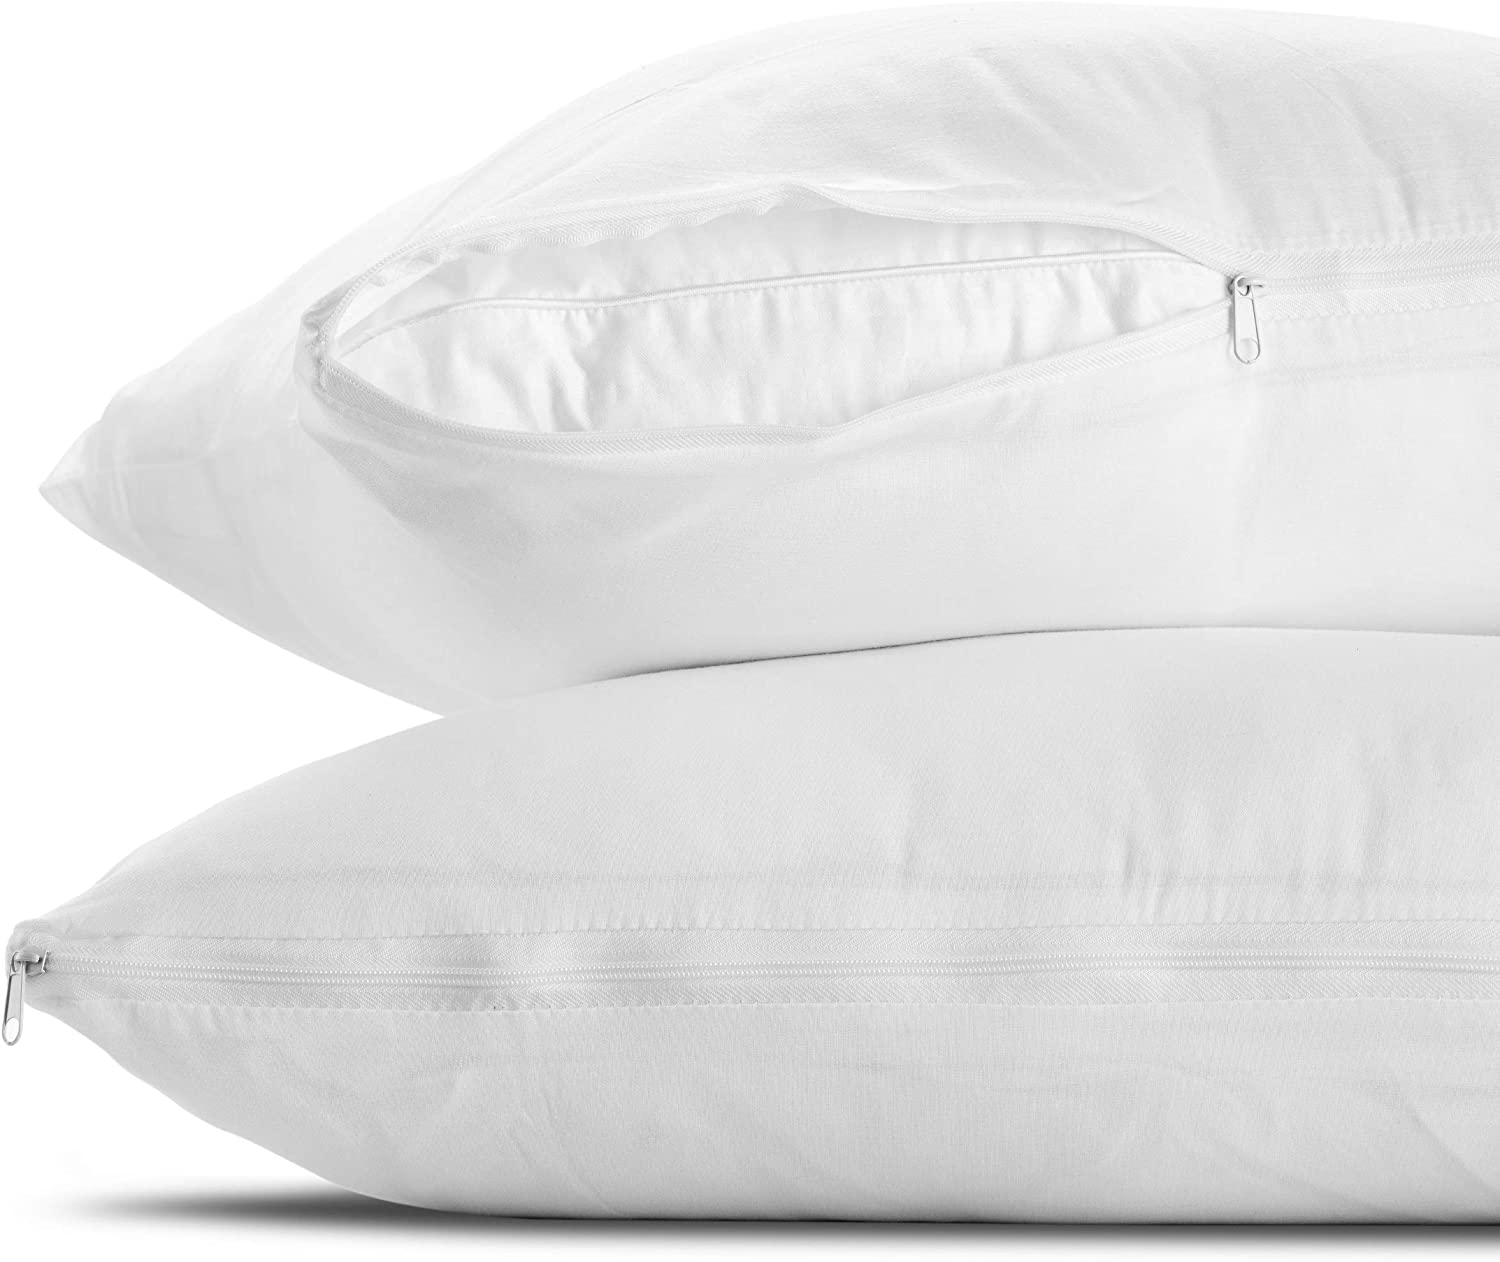 Hypoallergenic /& Quiet Dust /& Allergens Standard - Set of 2-20x26 100/% Cotton Breathable Pillow Covers Mastertex Standard Pillow Protectors 2 Pack Protects from Dirt